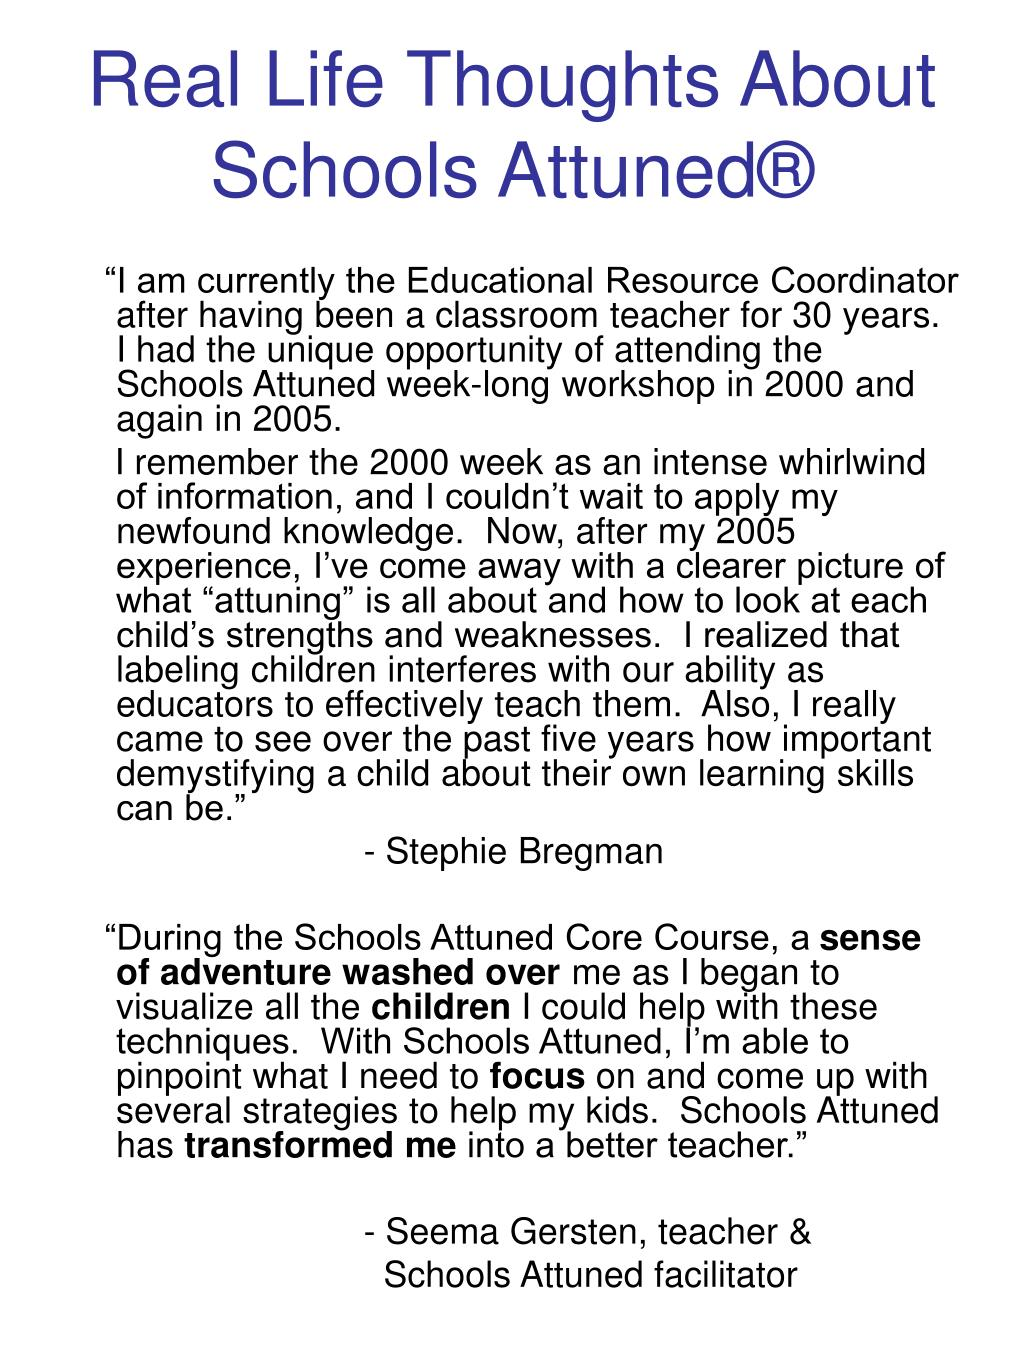 Real Life Thoughts About Schools Attuned®